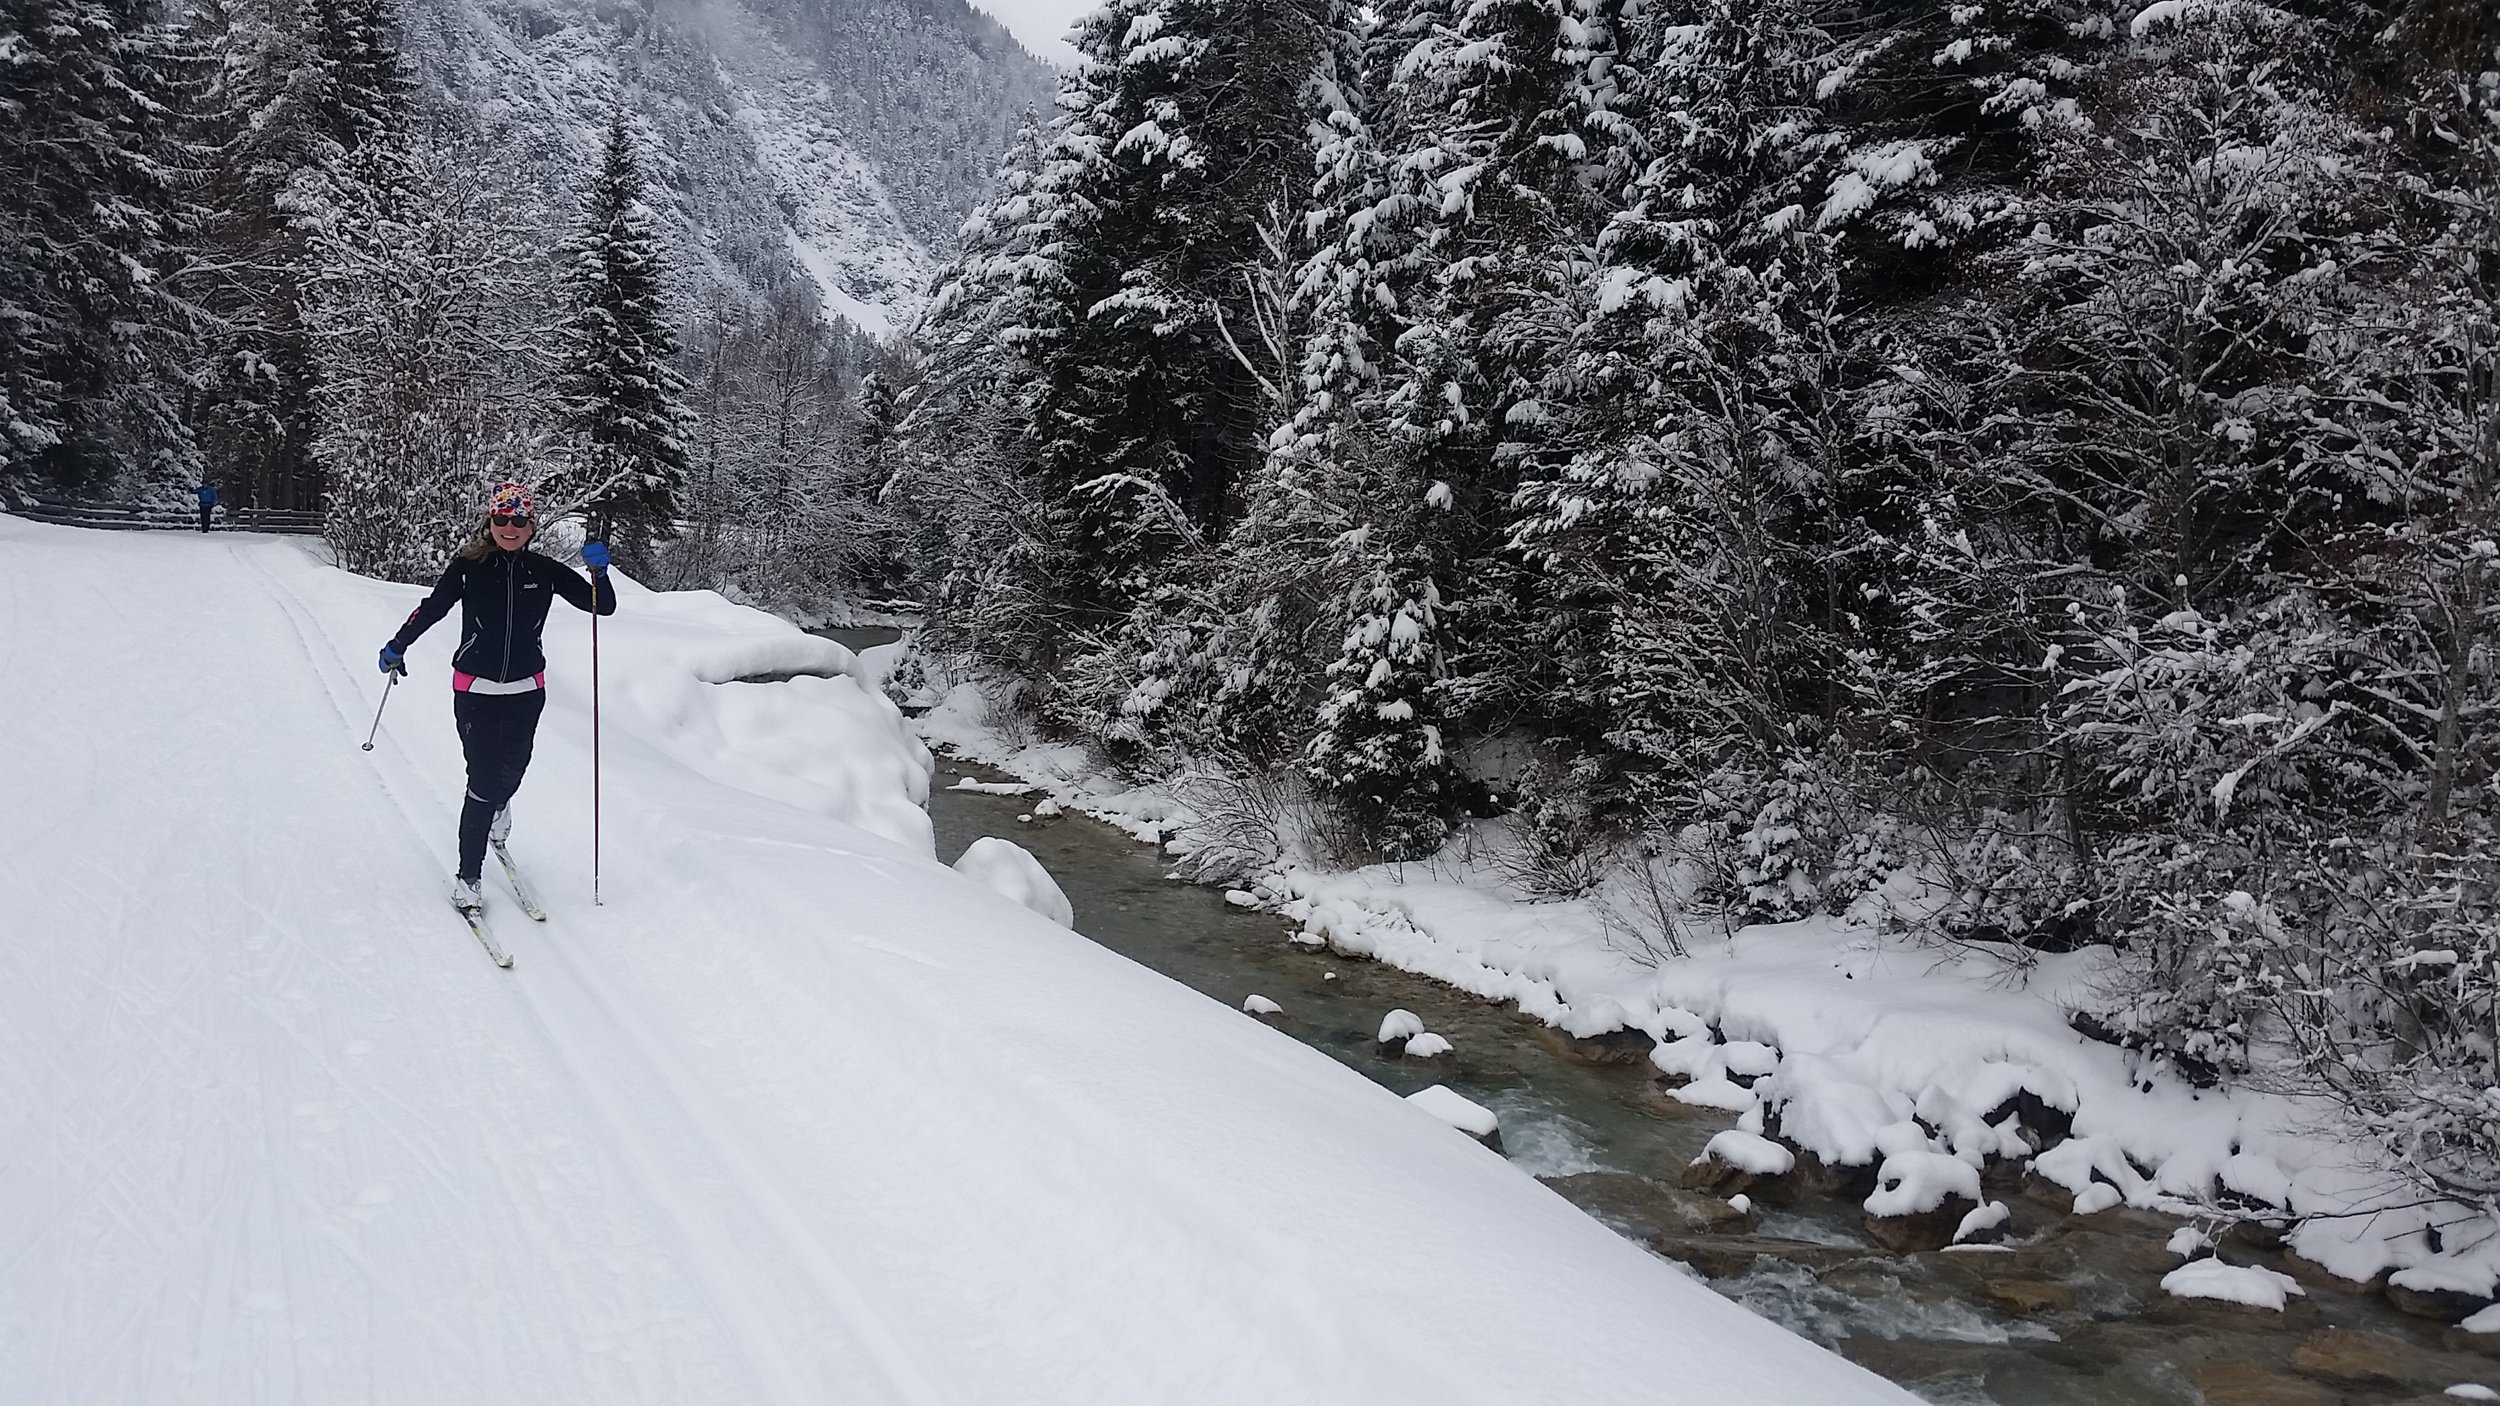 Skiing along the Leutascher Ache stream in Leutasch